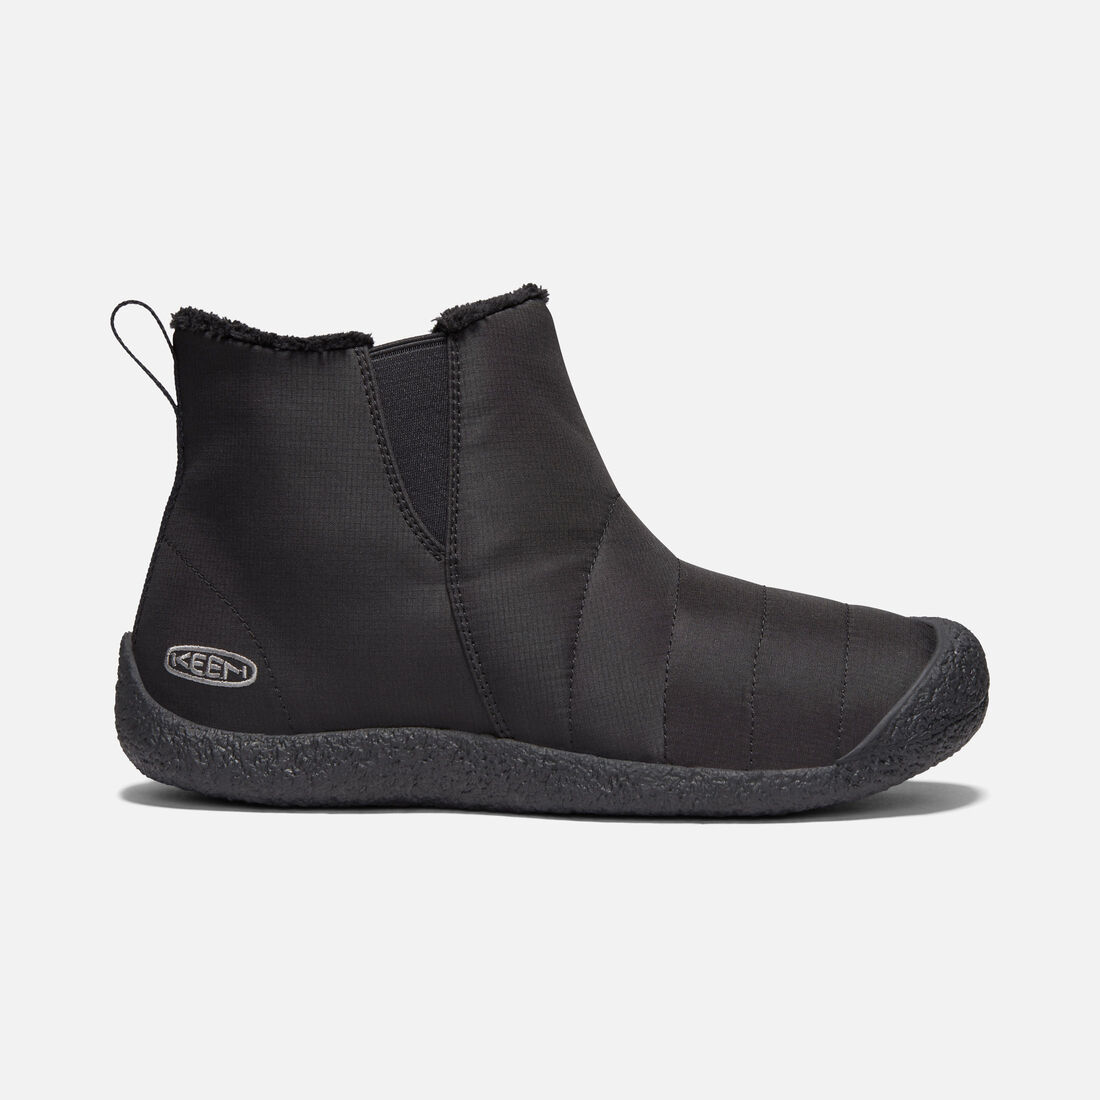 Men's Howser Boot in BLACK/BLACK - large view.